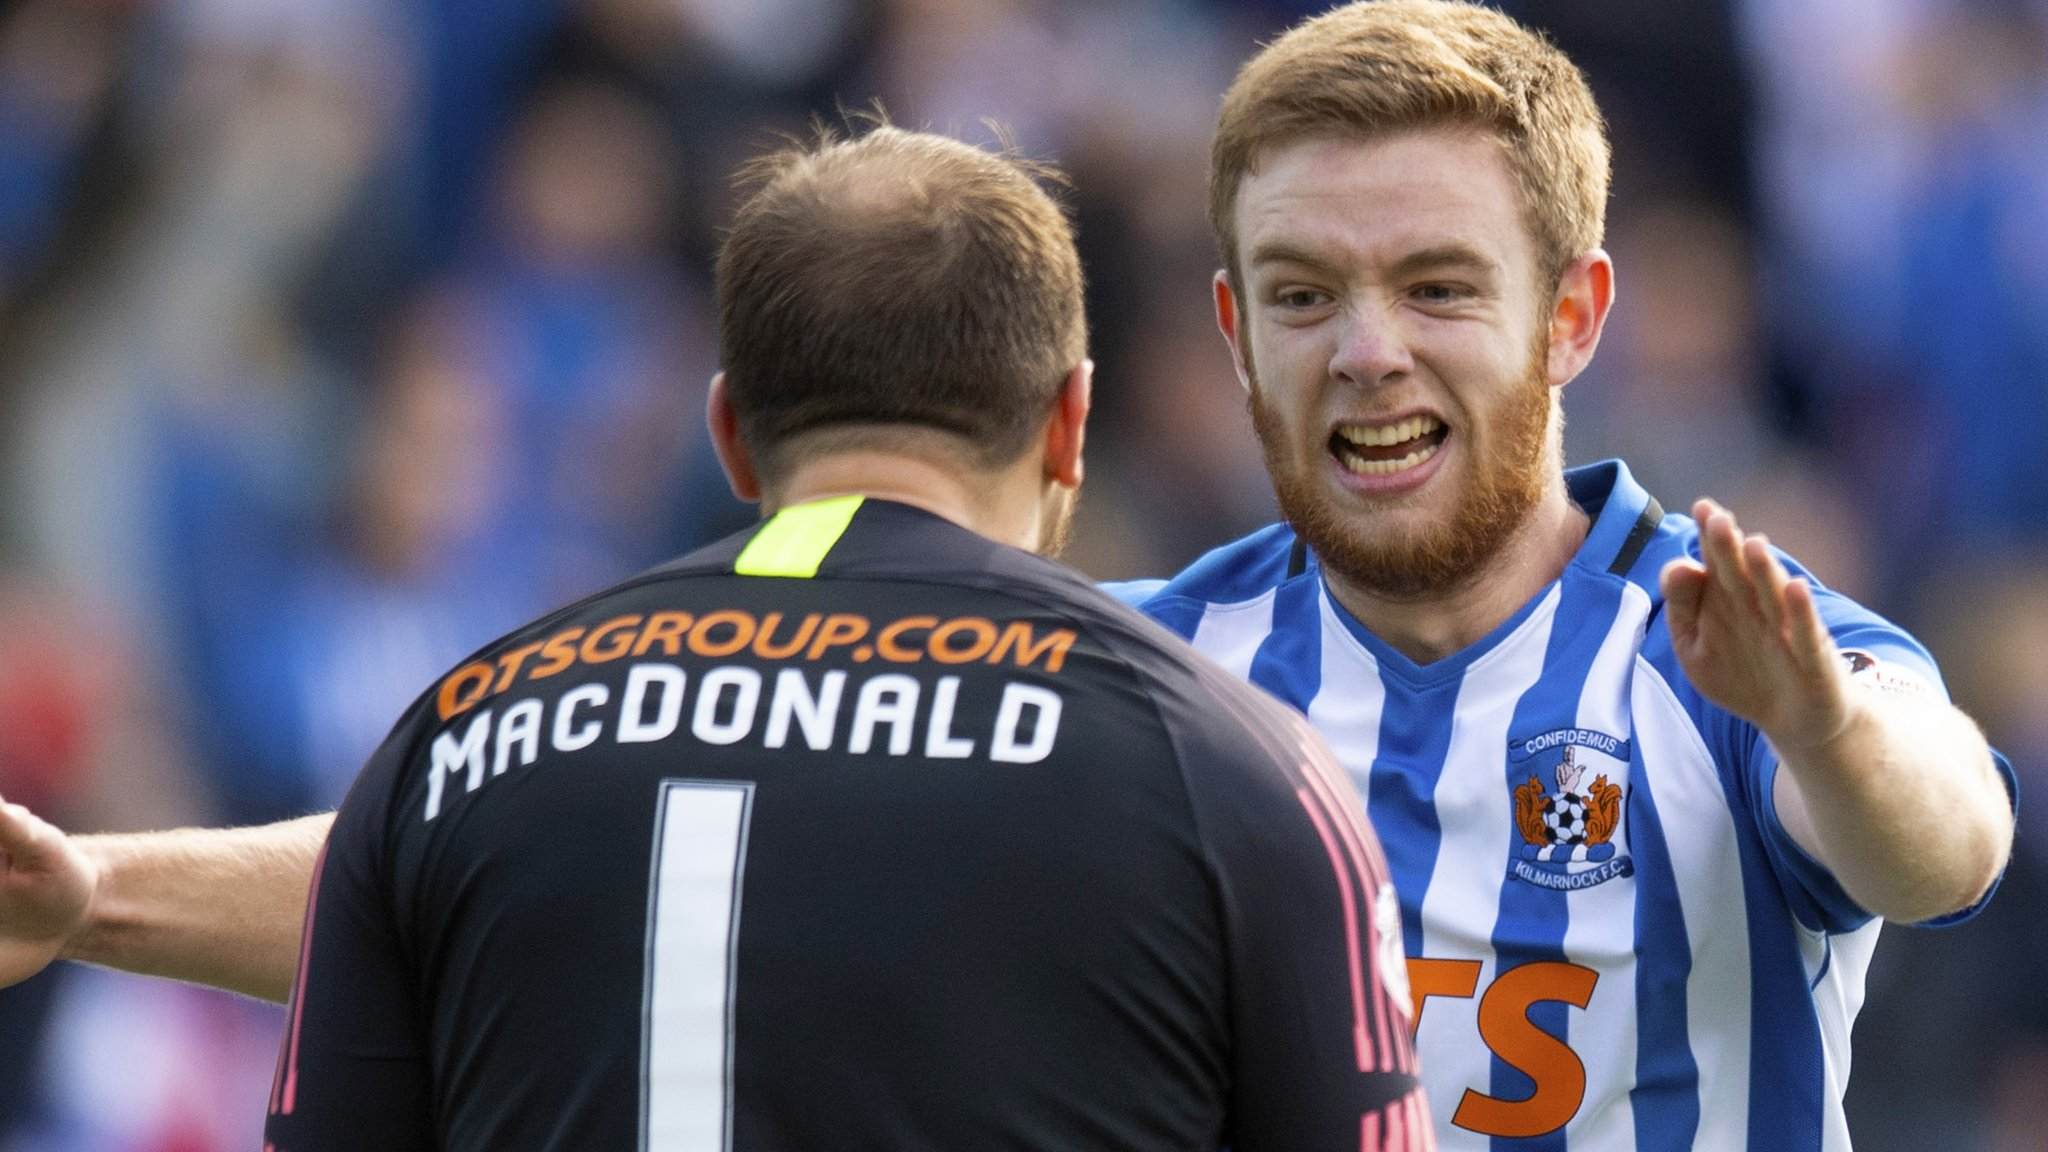 Kilmarnock 2-1 Celtic: Findlay header earns Killie dramatic win over champions